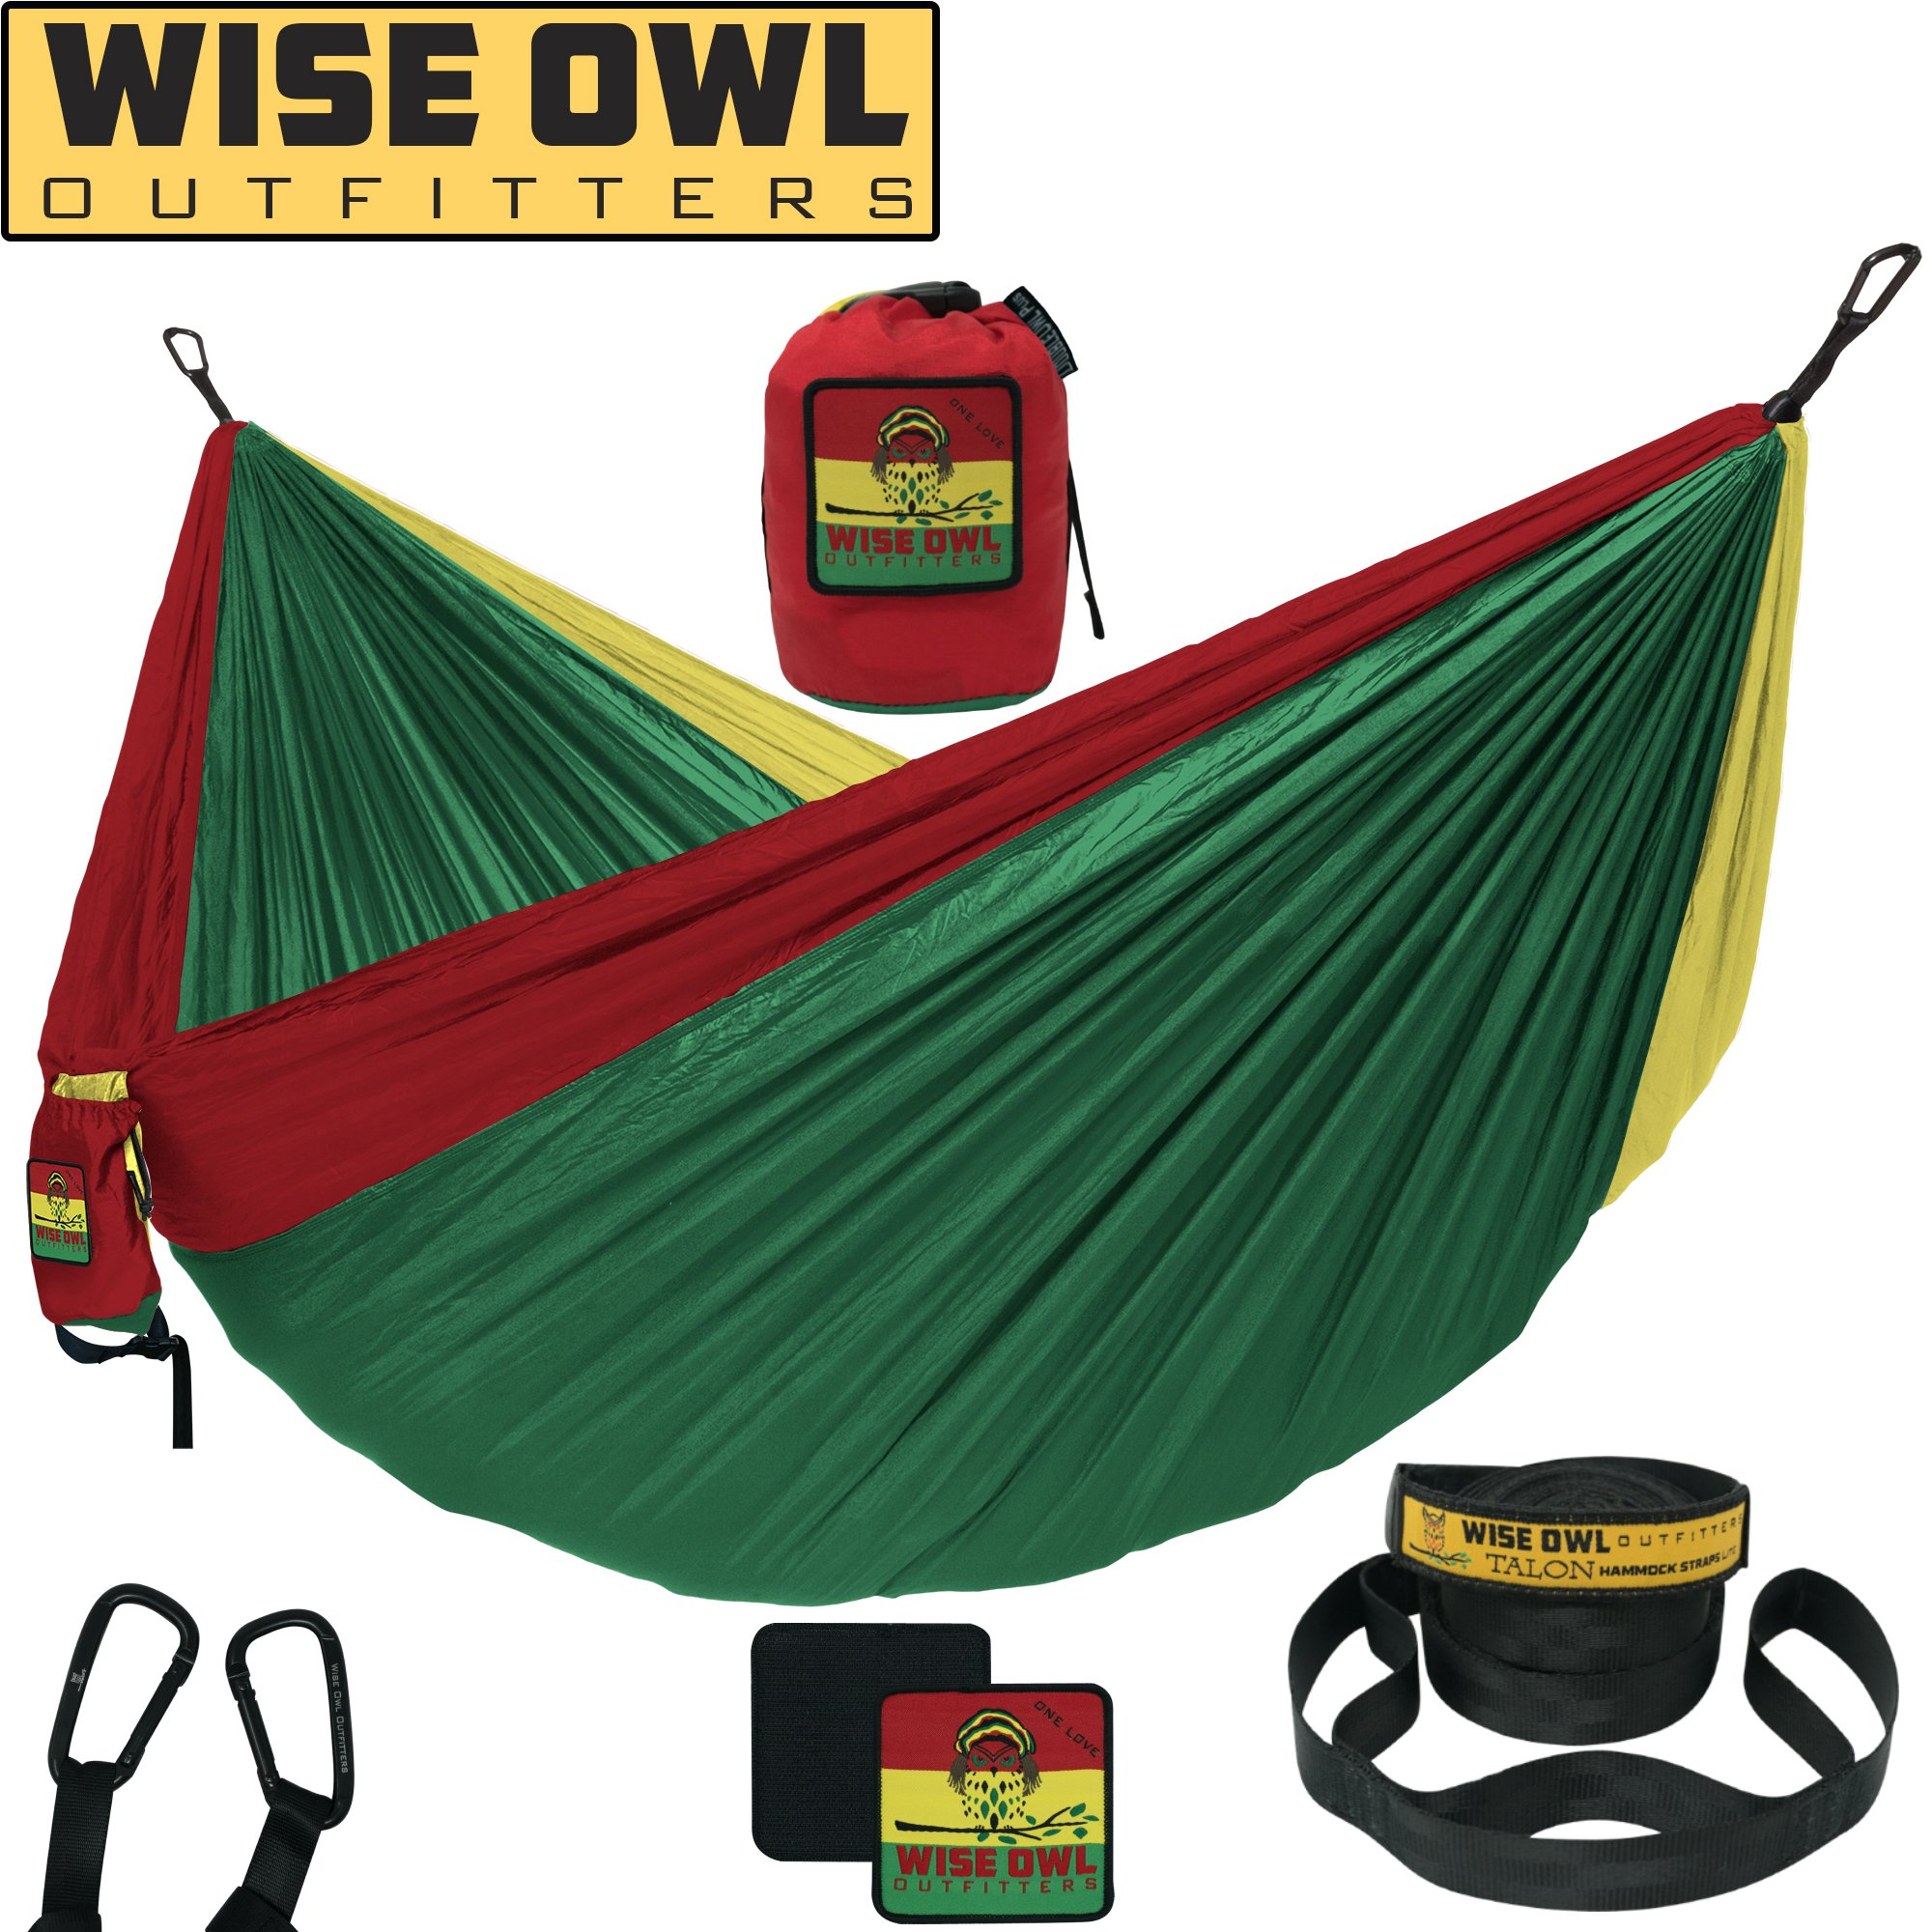 Wise Owl Outfitters Hammock Camping Double & Single with Tree Straps - USA Based Hammocks Brand Gear, Indoor Outdoor Backpacking Survival & Travel, Portable SO OL by Wise Owl Outfitters